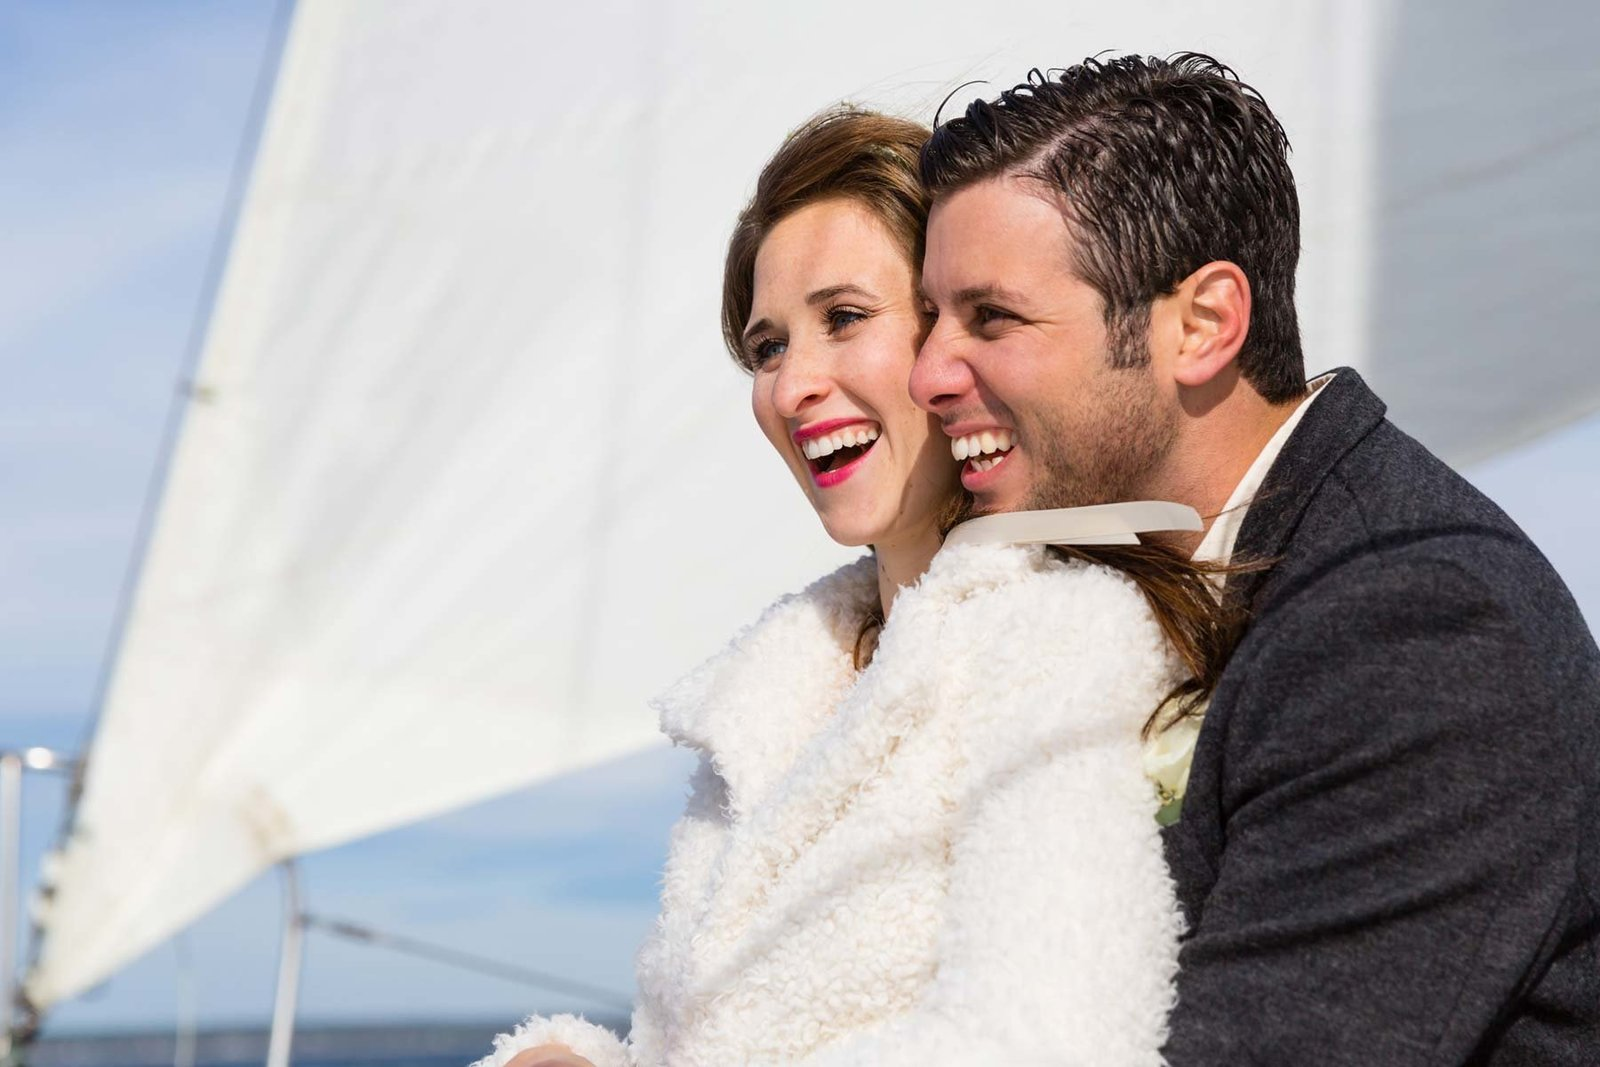 Ogunquit Maine Elopement Photographers on Silver Linings Sailboat on the water Elope Image Bride Groom I am Sarah V Photography